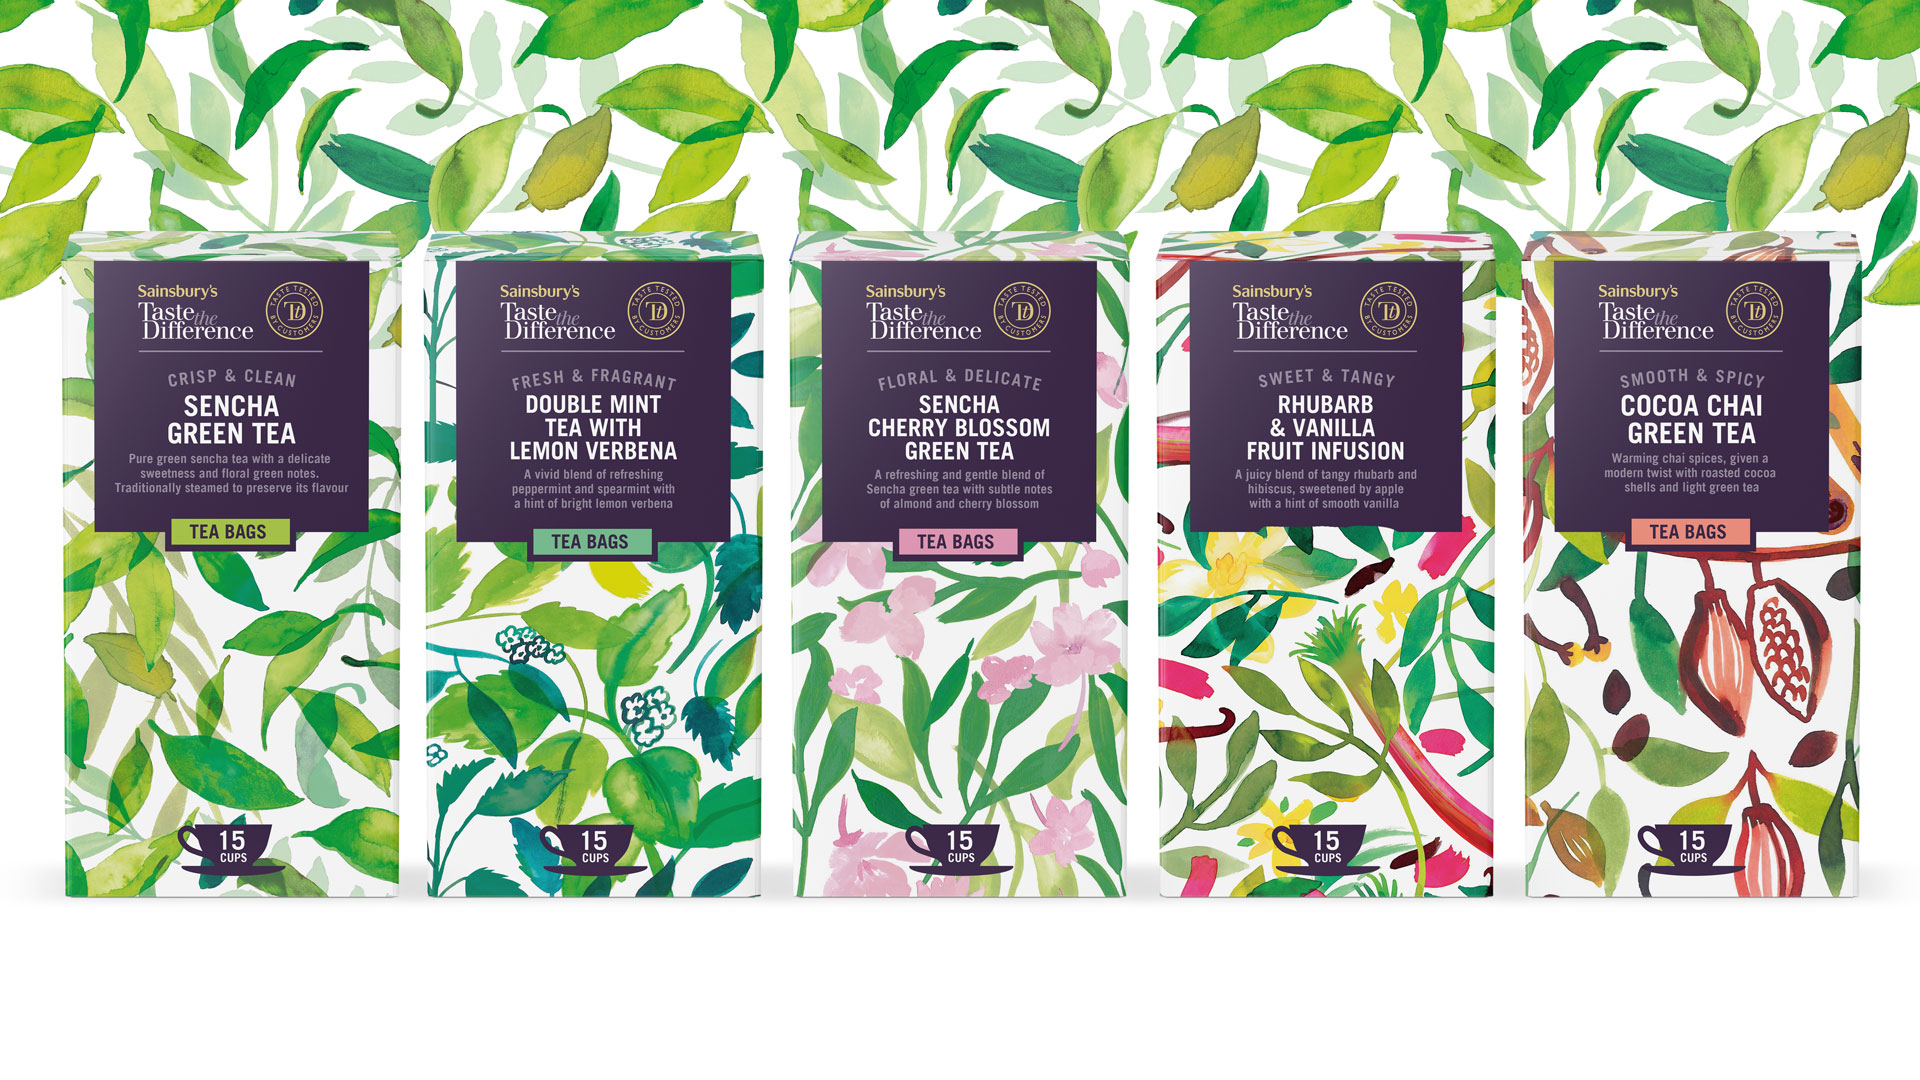 Sainsbury's Taste the Difference Tea & Infusion Packaging